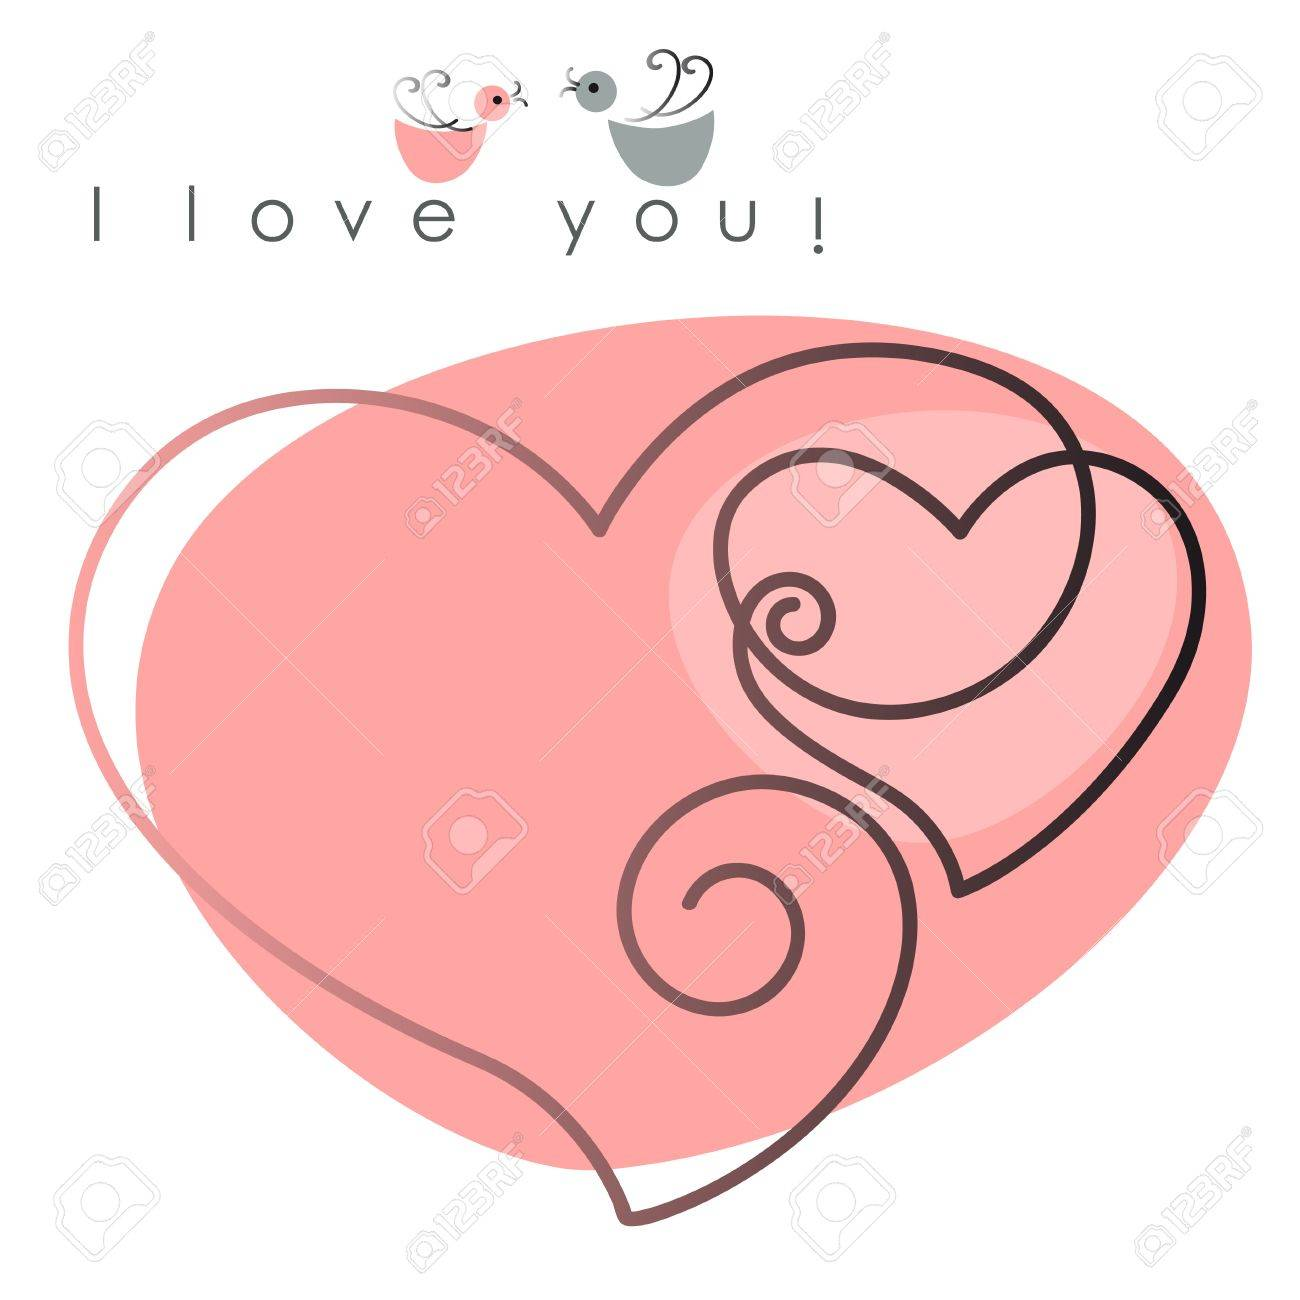 Valentine card. two hearts with birds on pink background, and text - I love you. Vector illustration - 11840325